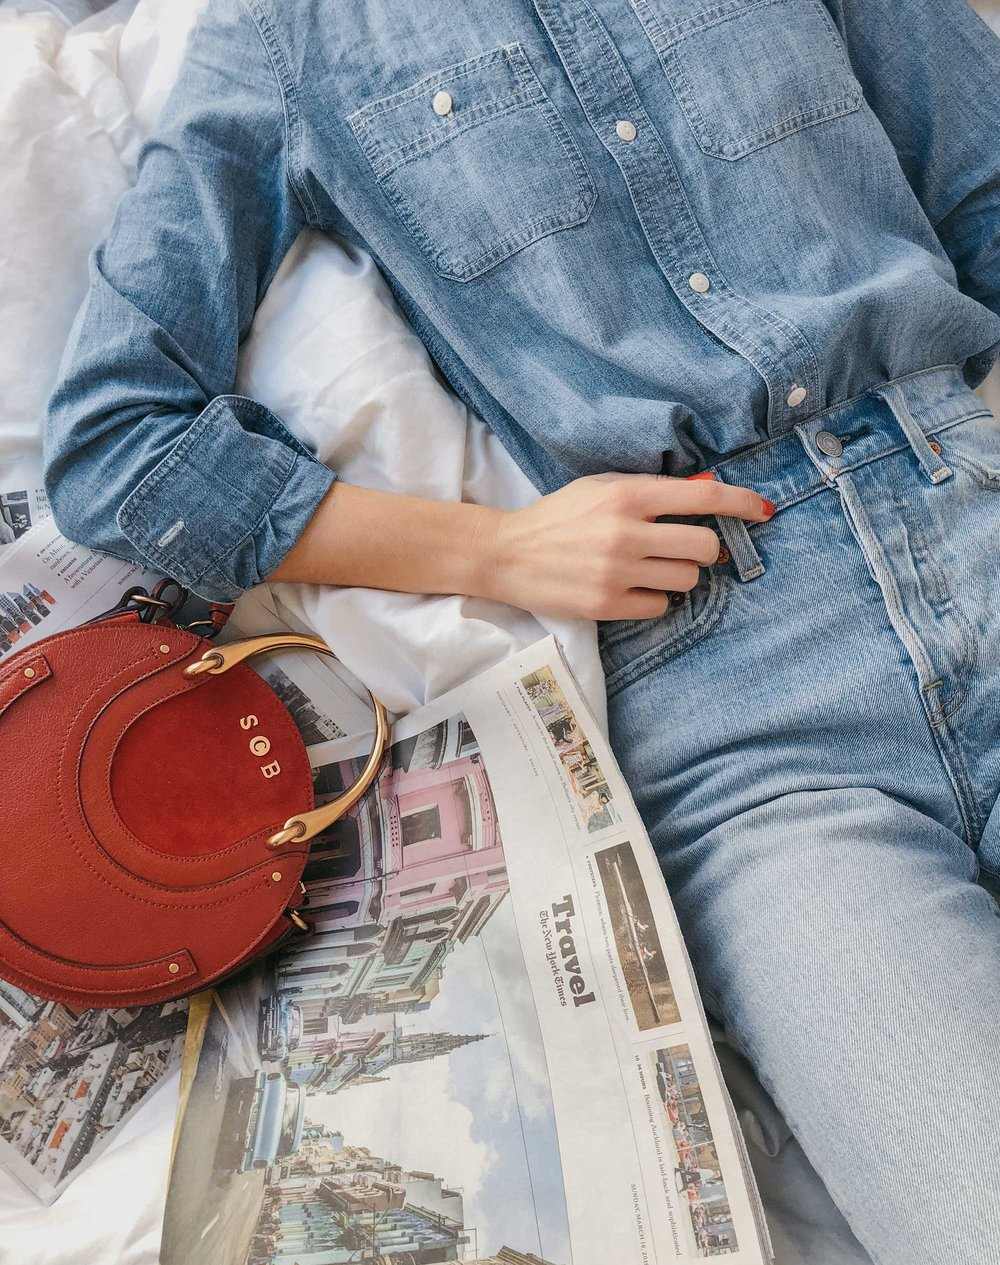 Madewell Chambray Boyfriend Shirt  Levi's Wedgie High-Rise Straight Jeans Chloe Pixie Leather Crossbody Bag4.jpg